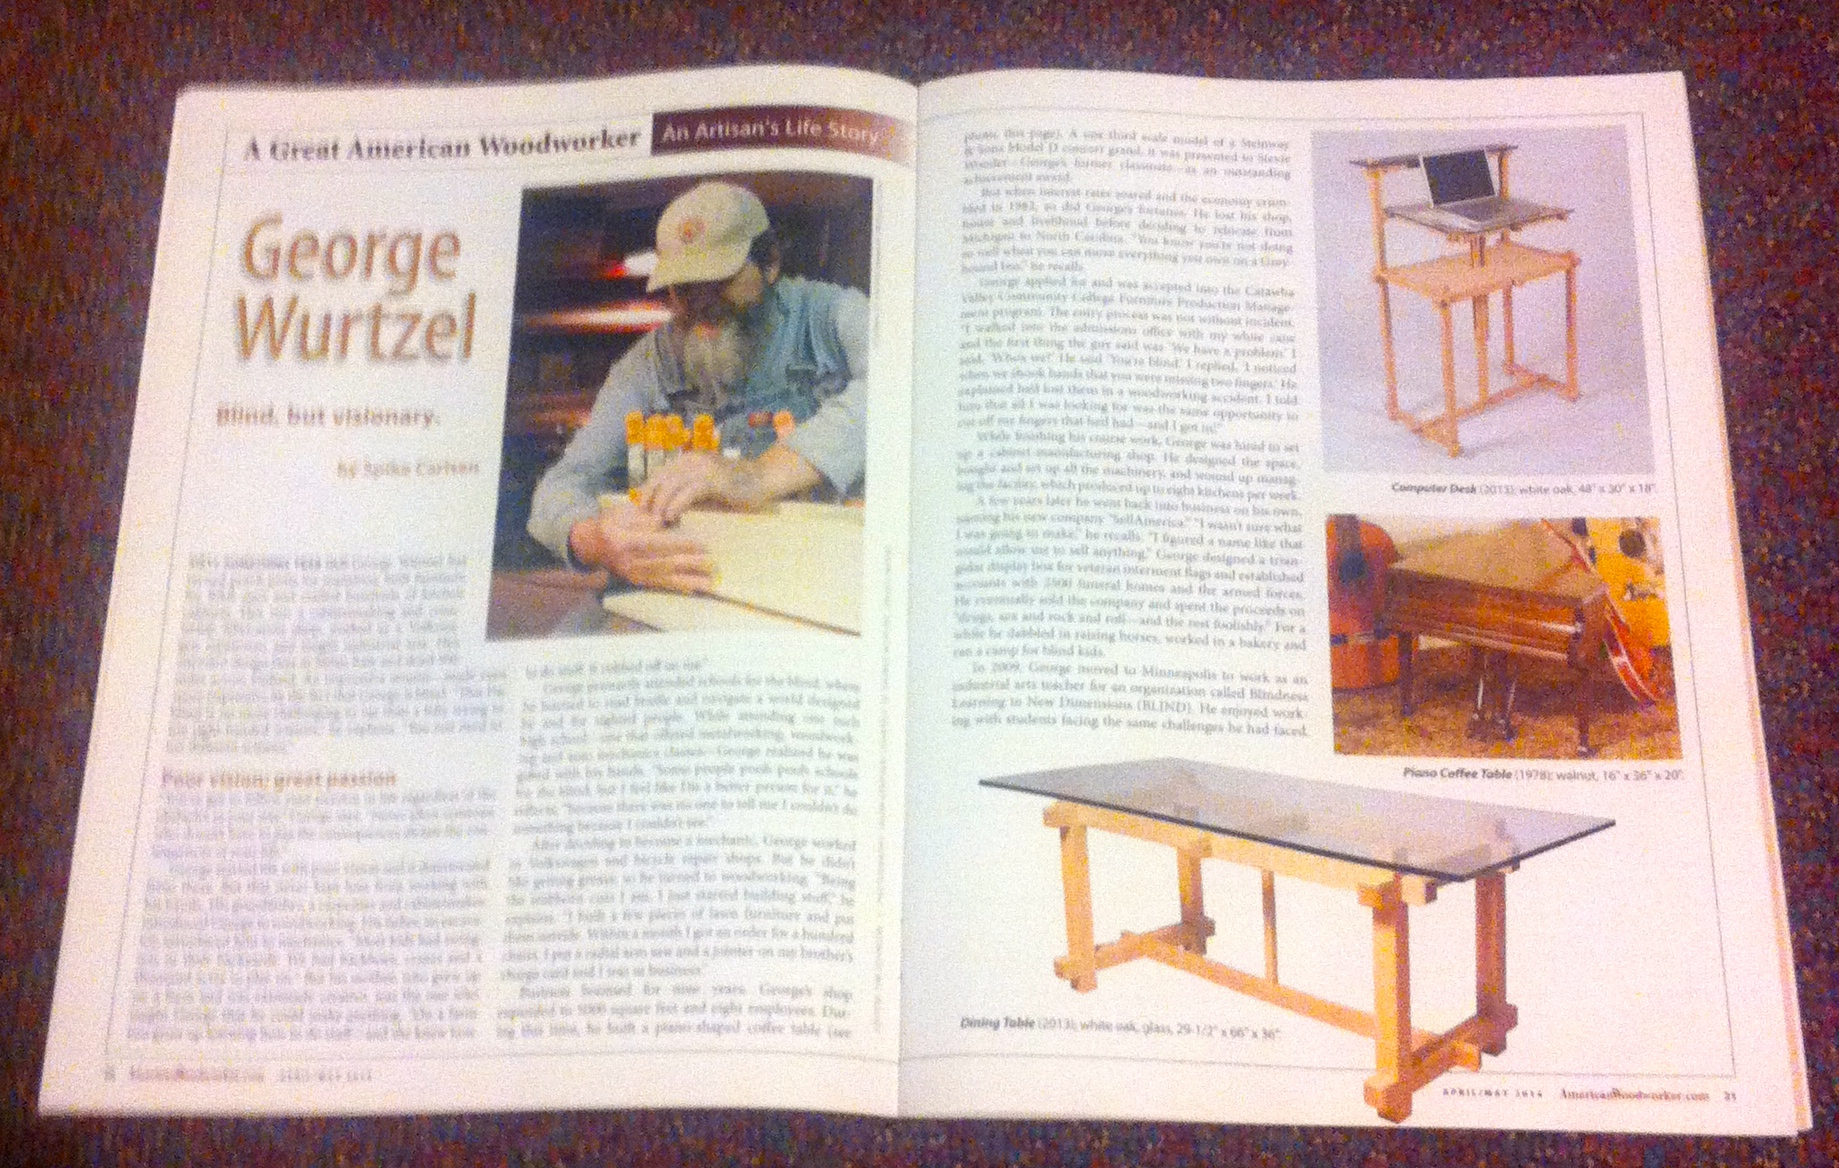 American Woodworker Magazine April / May 2014 featuring George Wurtzel